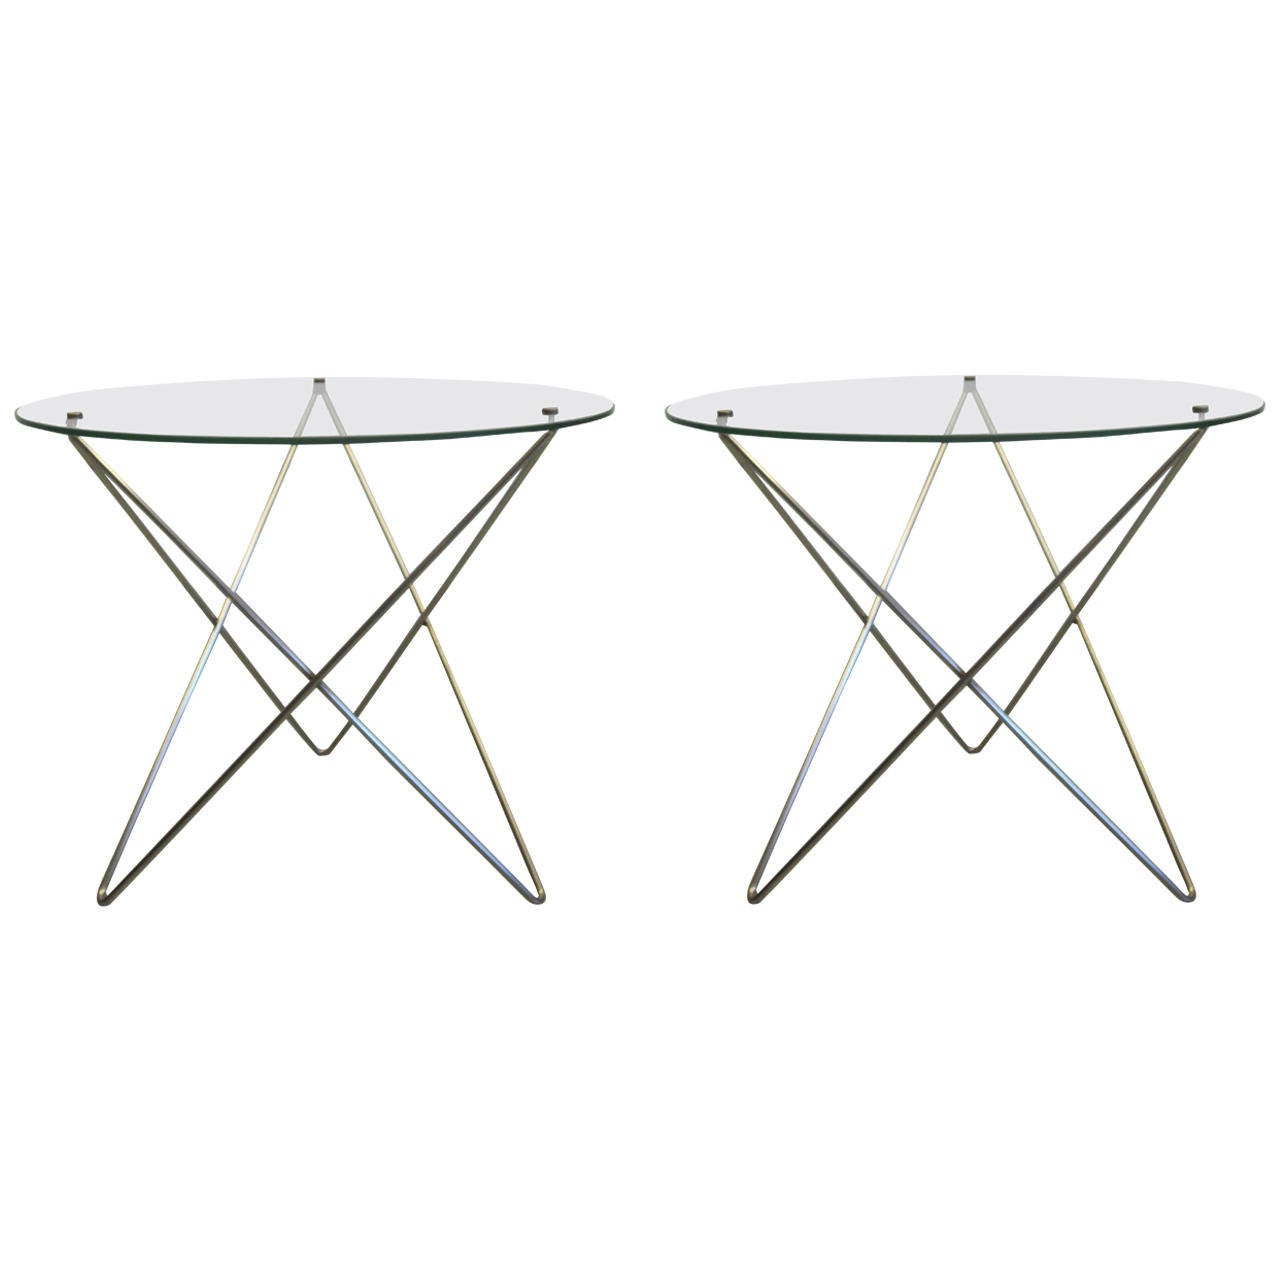 Pair French Mid-Century Modern Polished Steel & Glass Side Tables by Studio 4A